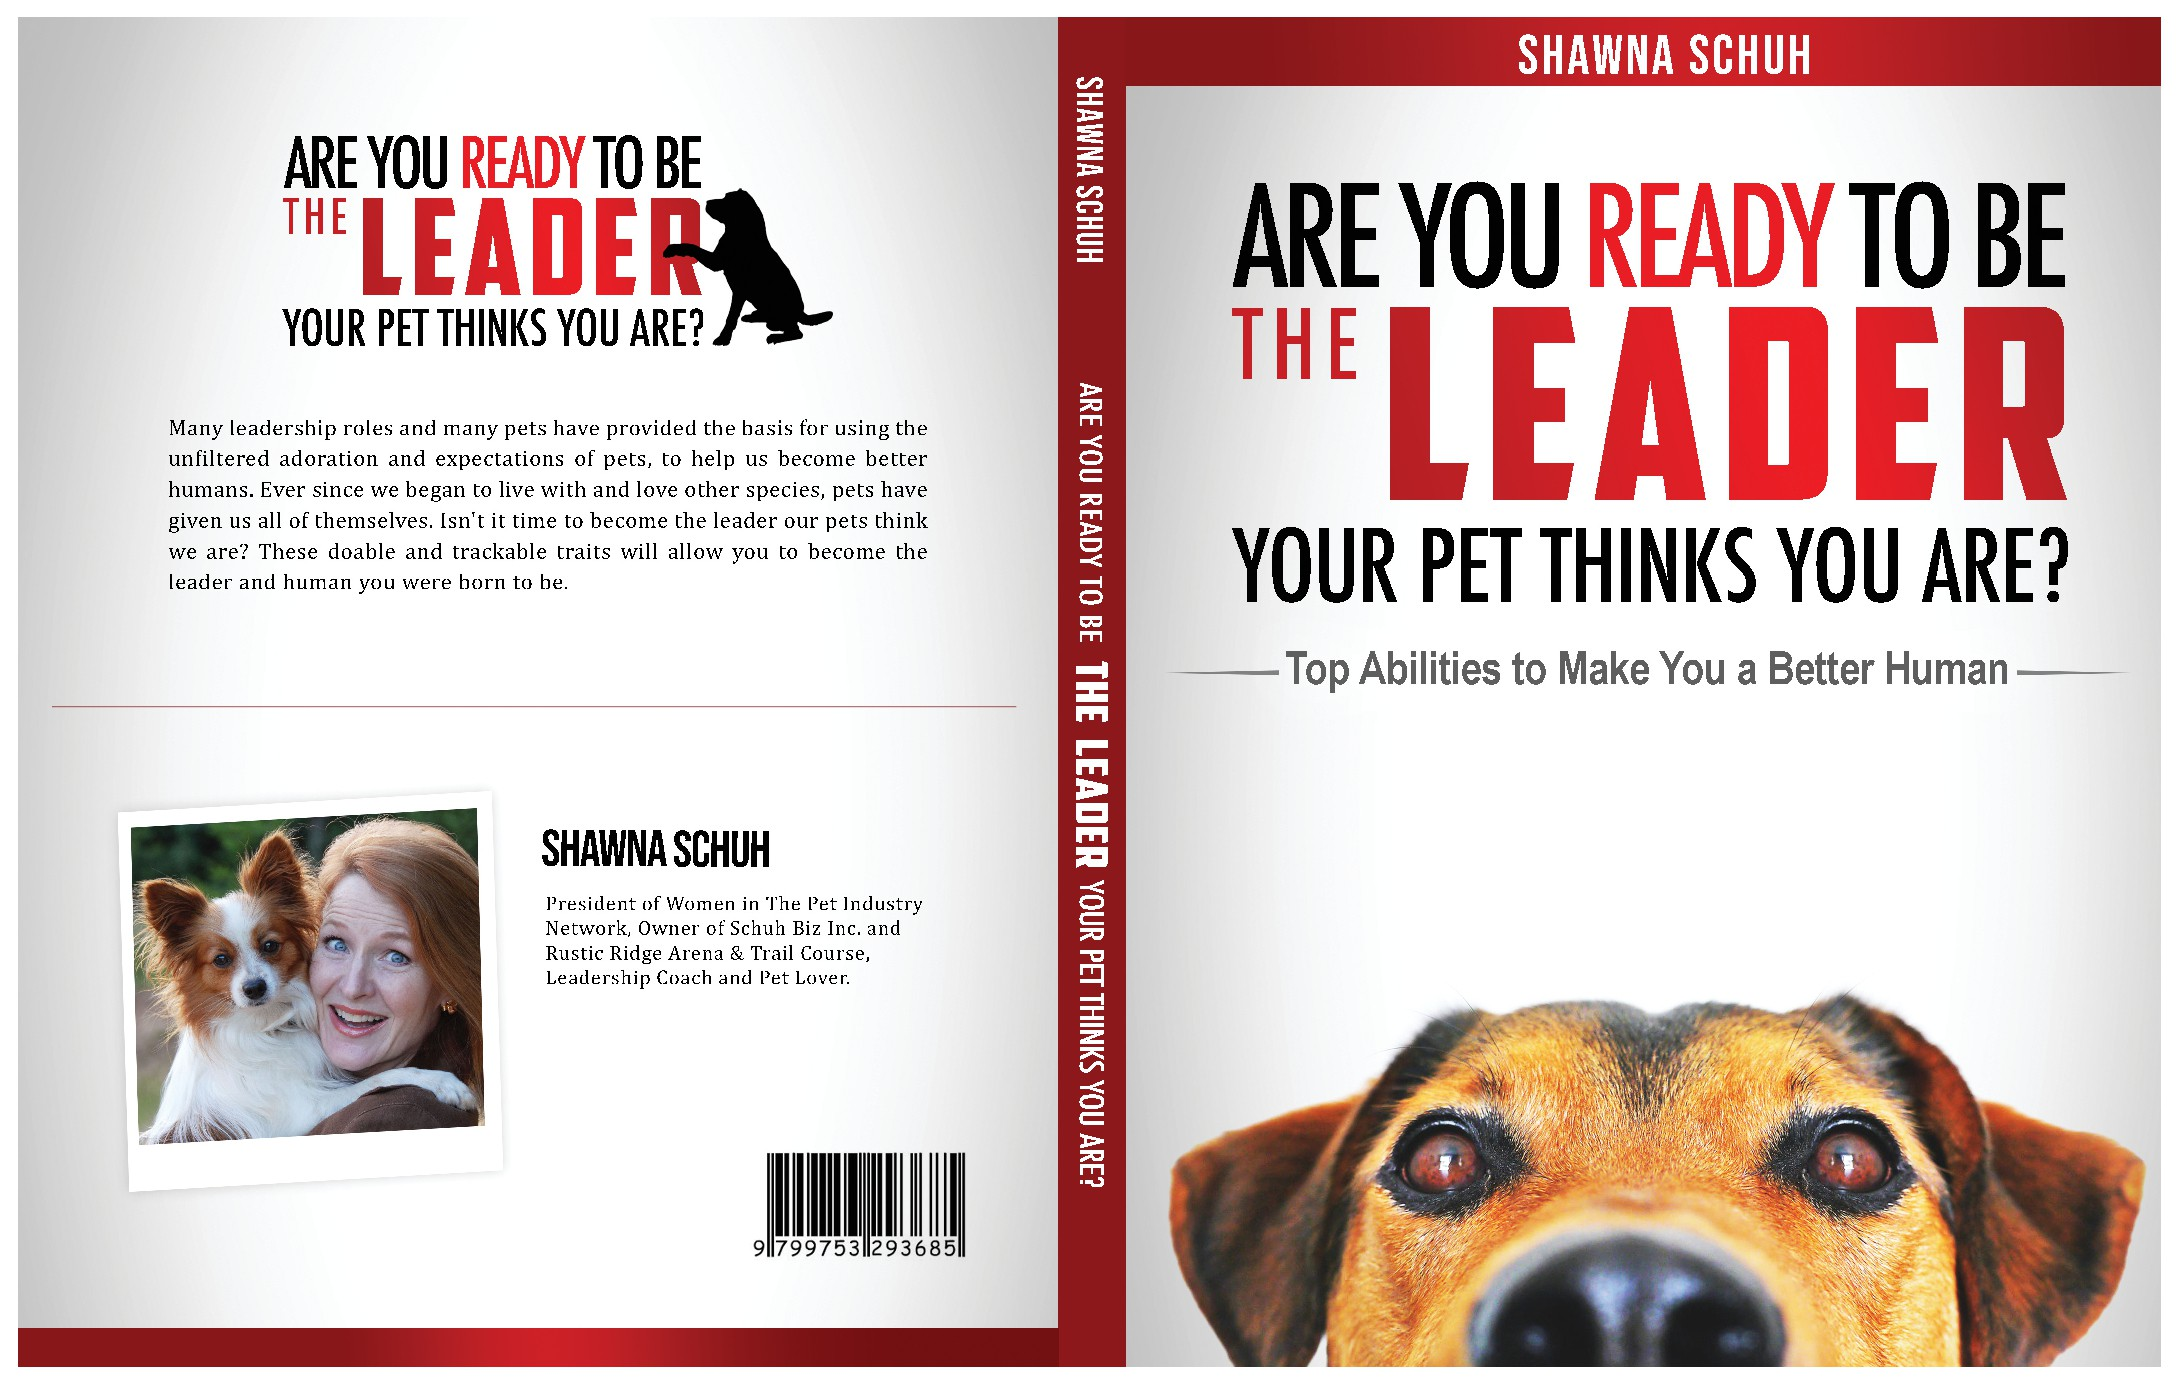 Use Your Creativity to Combine Two Cool Concepts - Leaders & Pets!